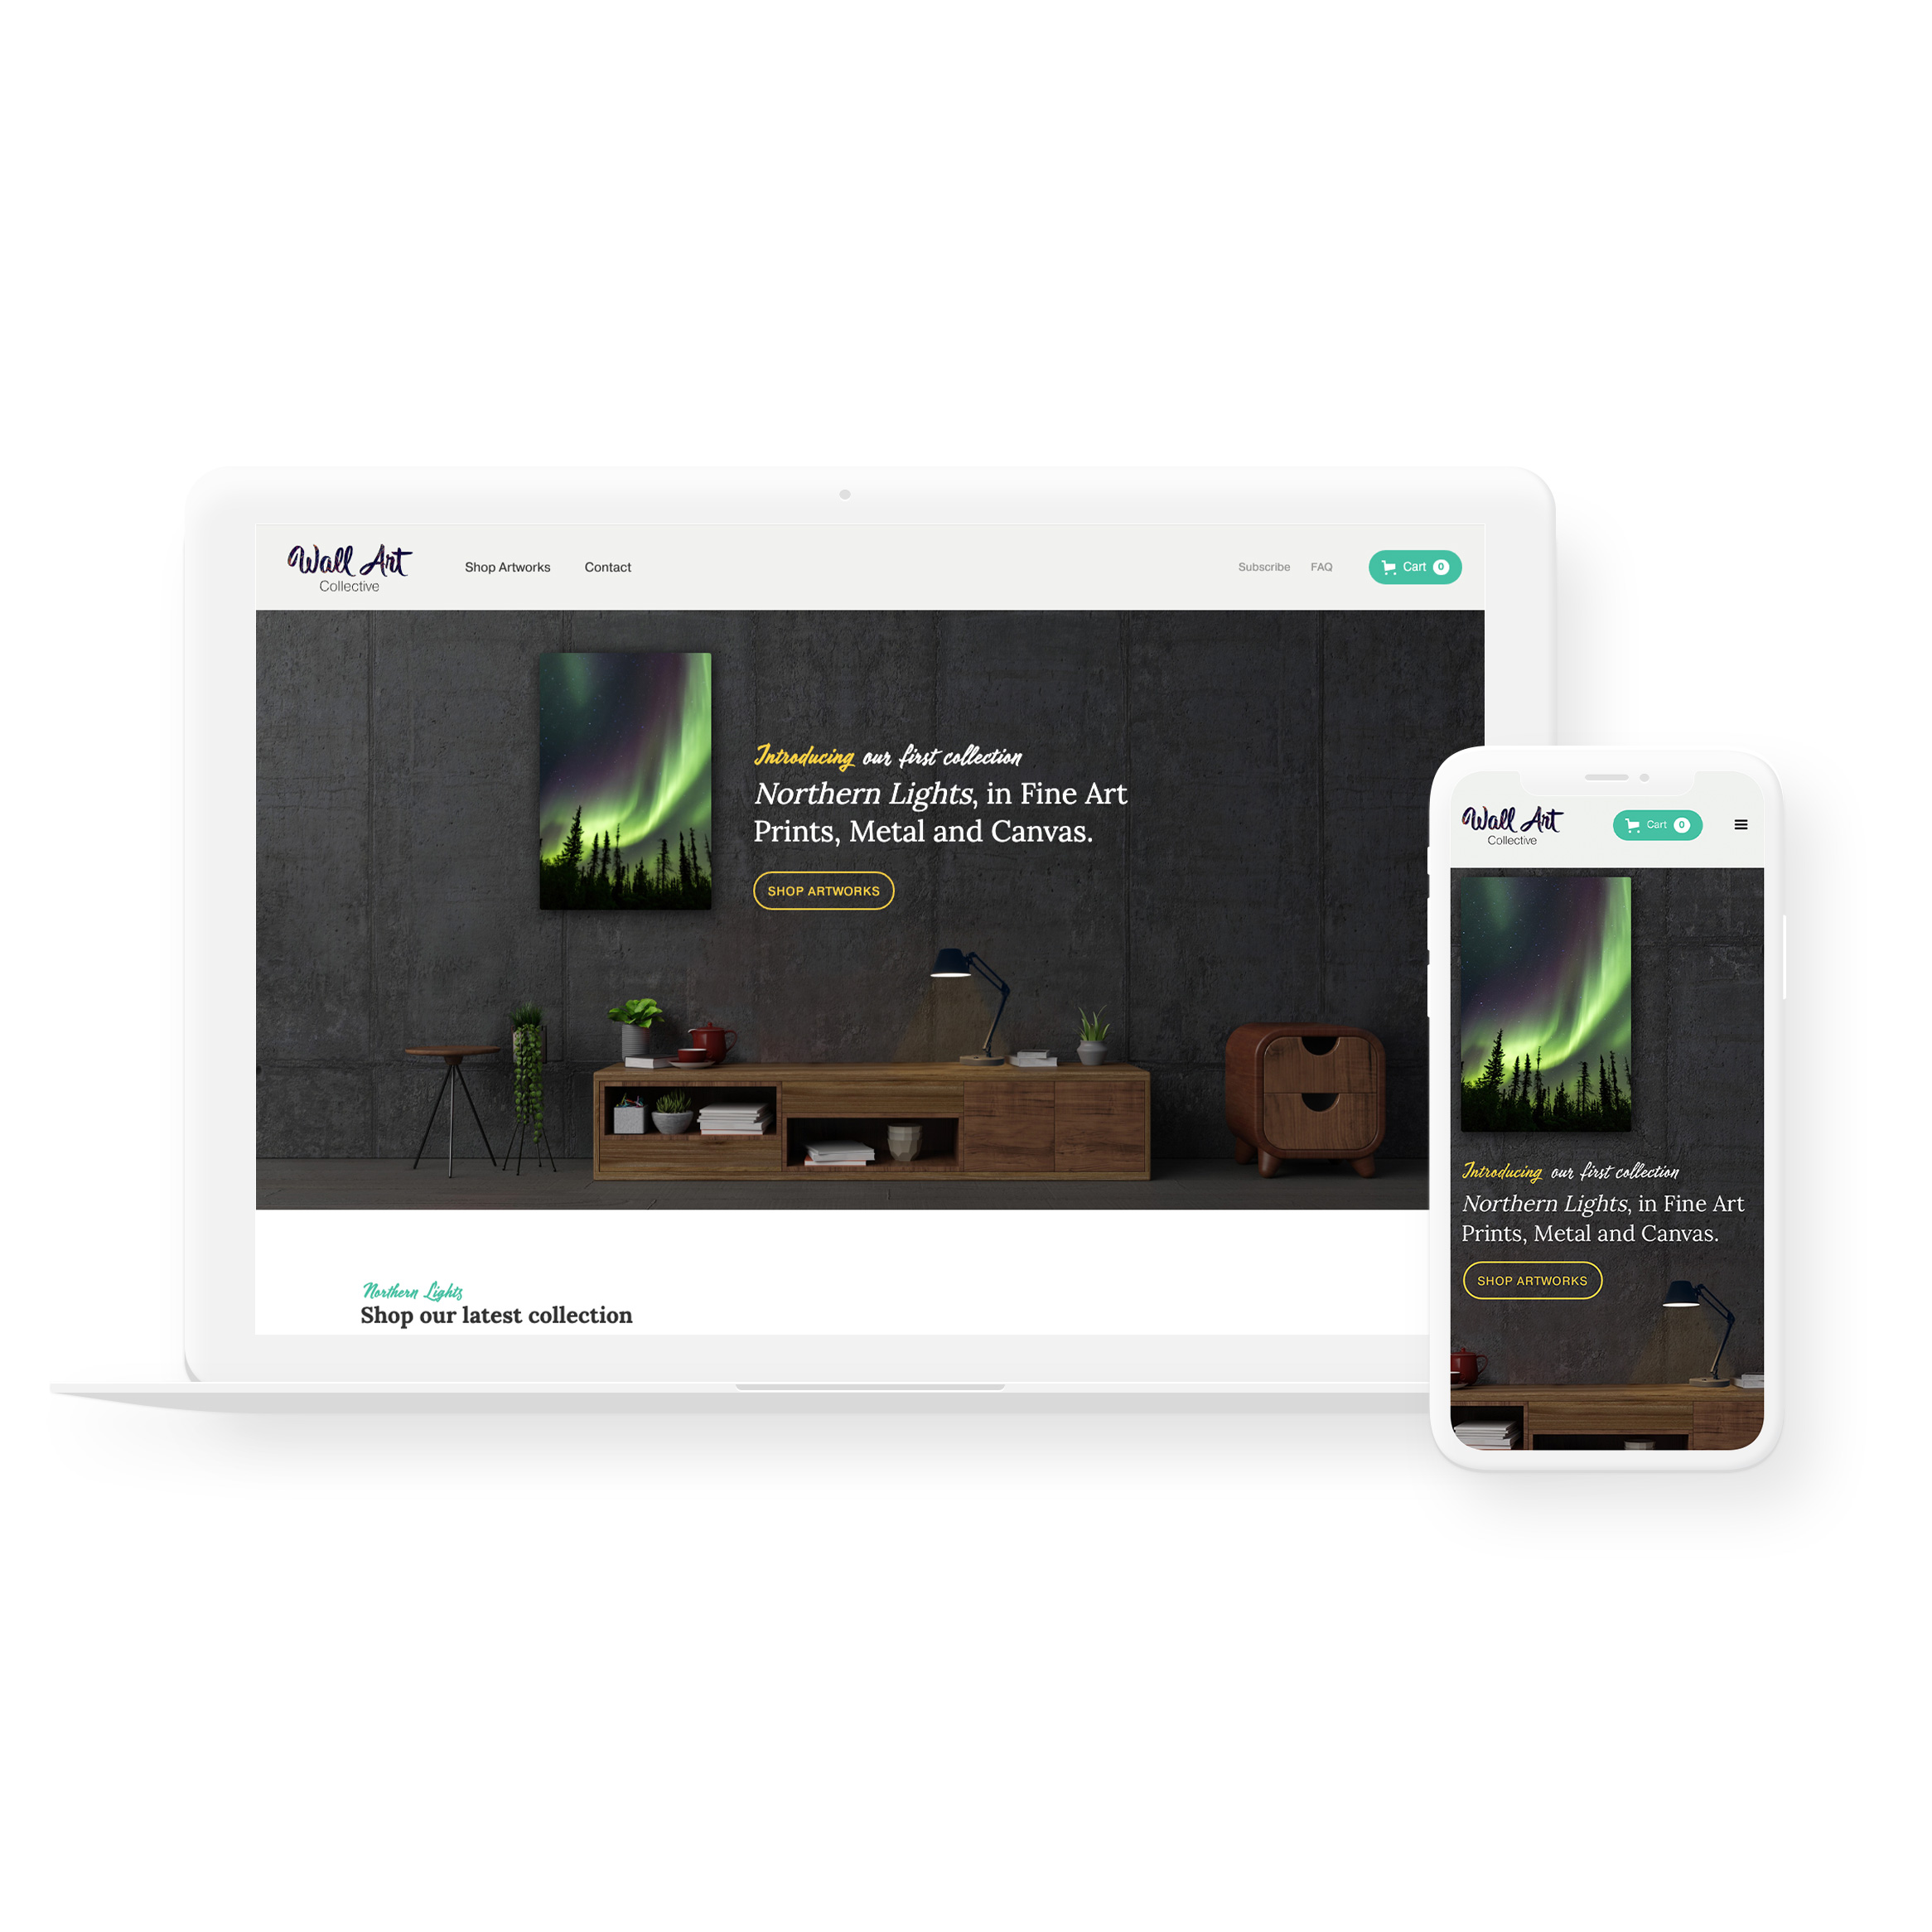 Sample image of website design showing desktop and mobile versions for Wall Art Collective